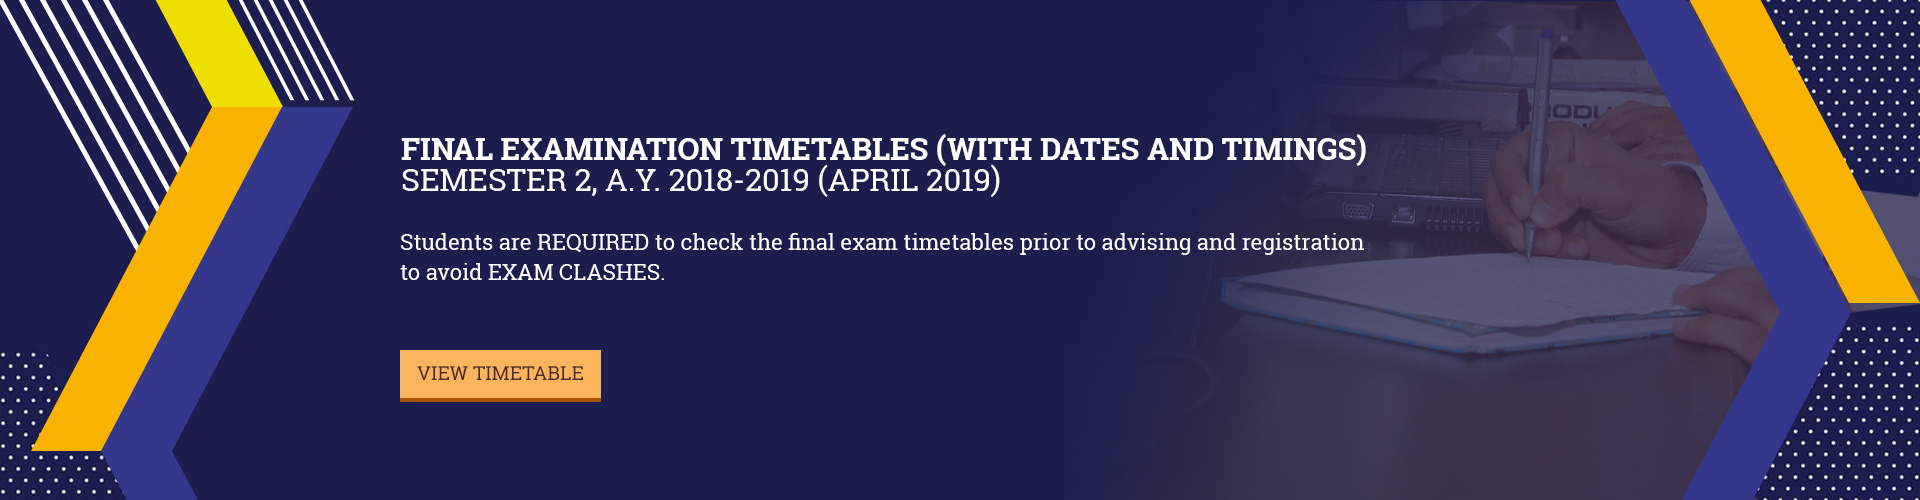 Final Examination Timetables (with dates and timings) for Semester 2, A.Y. 2018-2019 (April 2019)